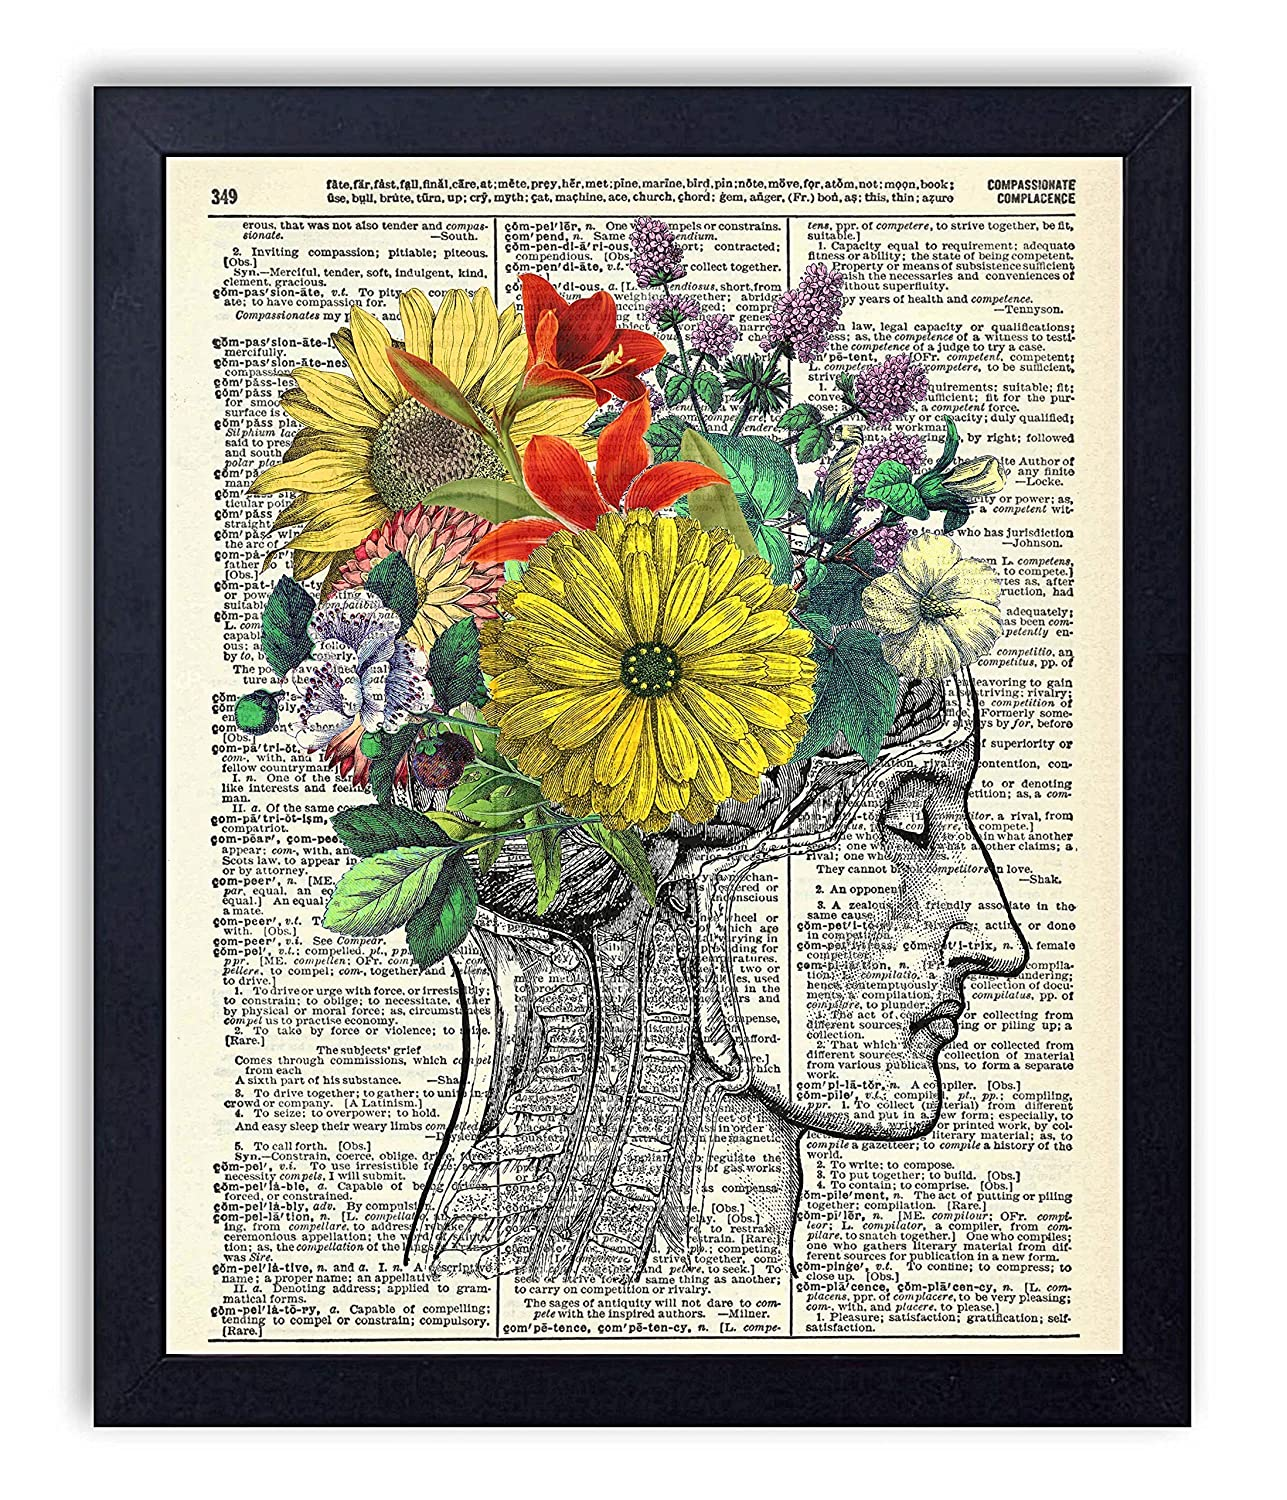 Beautiful Mind Human Anatomy With Flowers Vintage Wall Art Upcycled Dictionary Art Print Poster 8x10 inches, Unframed